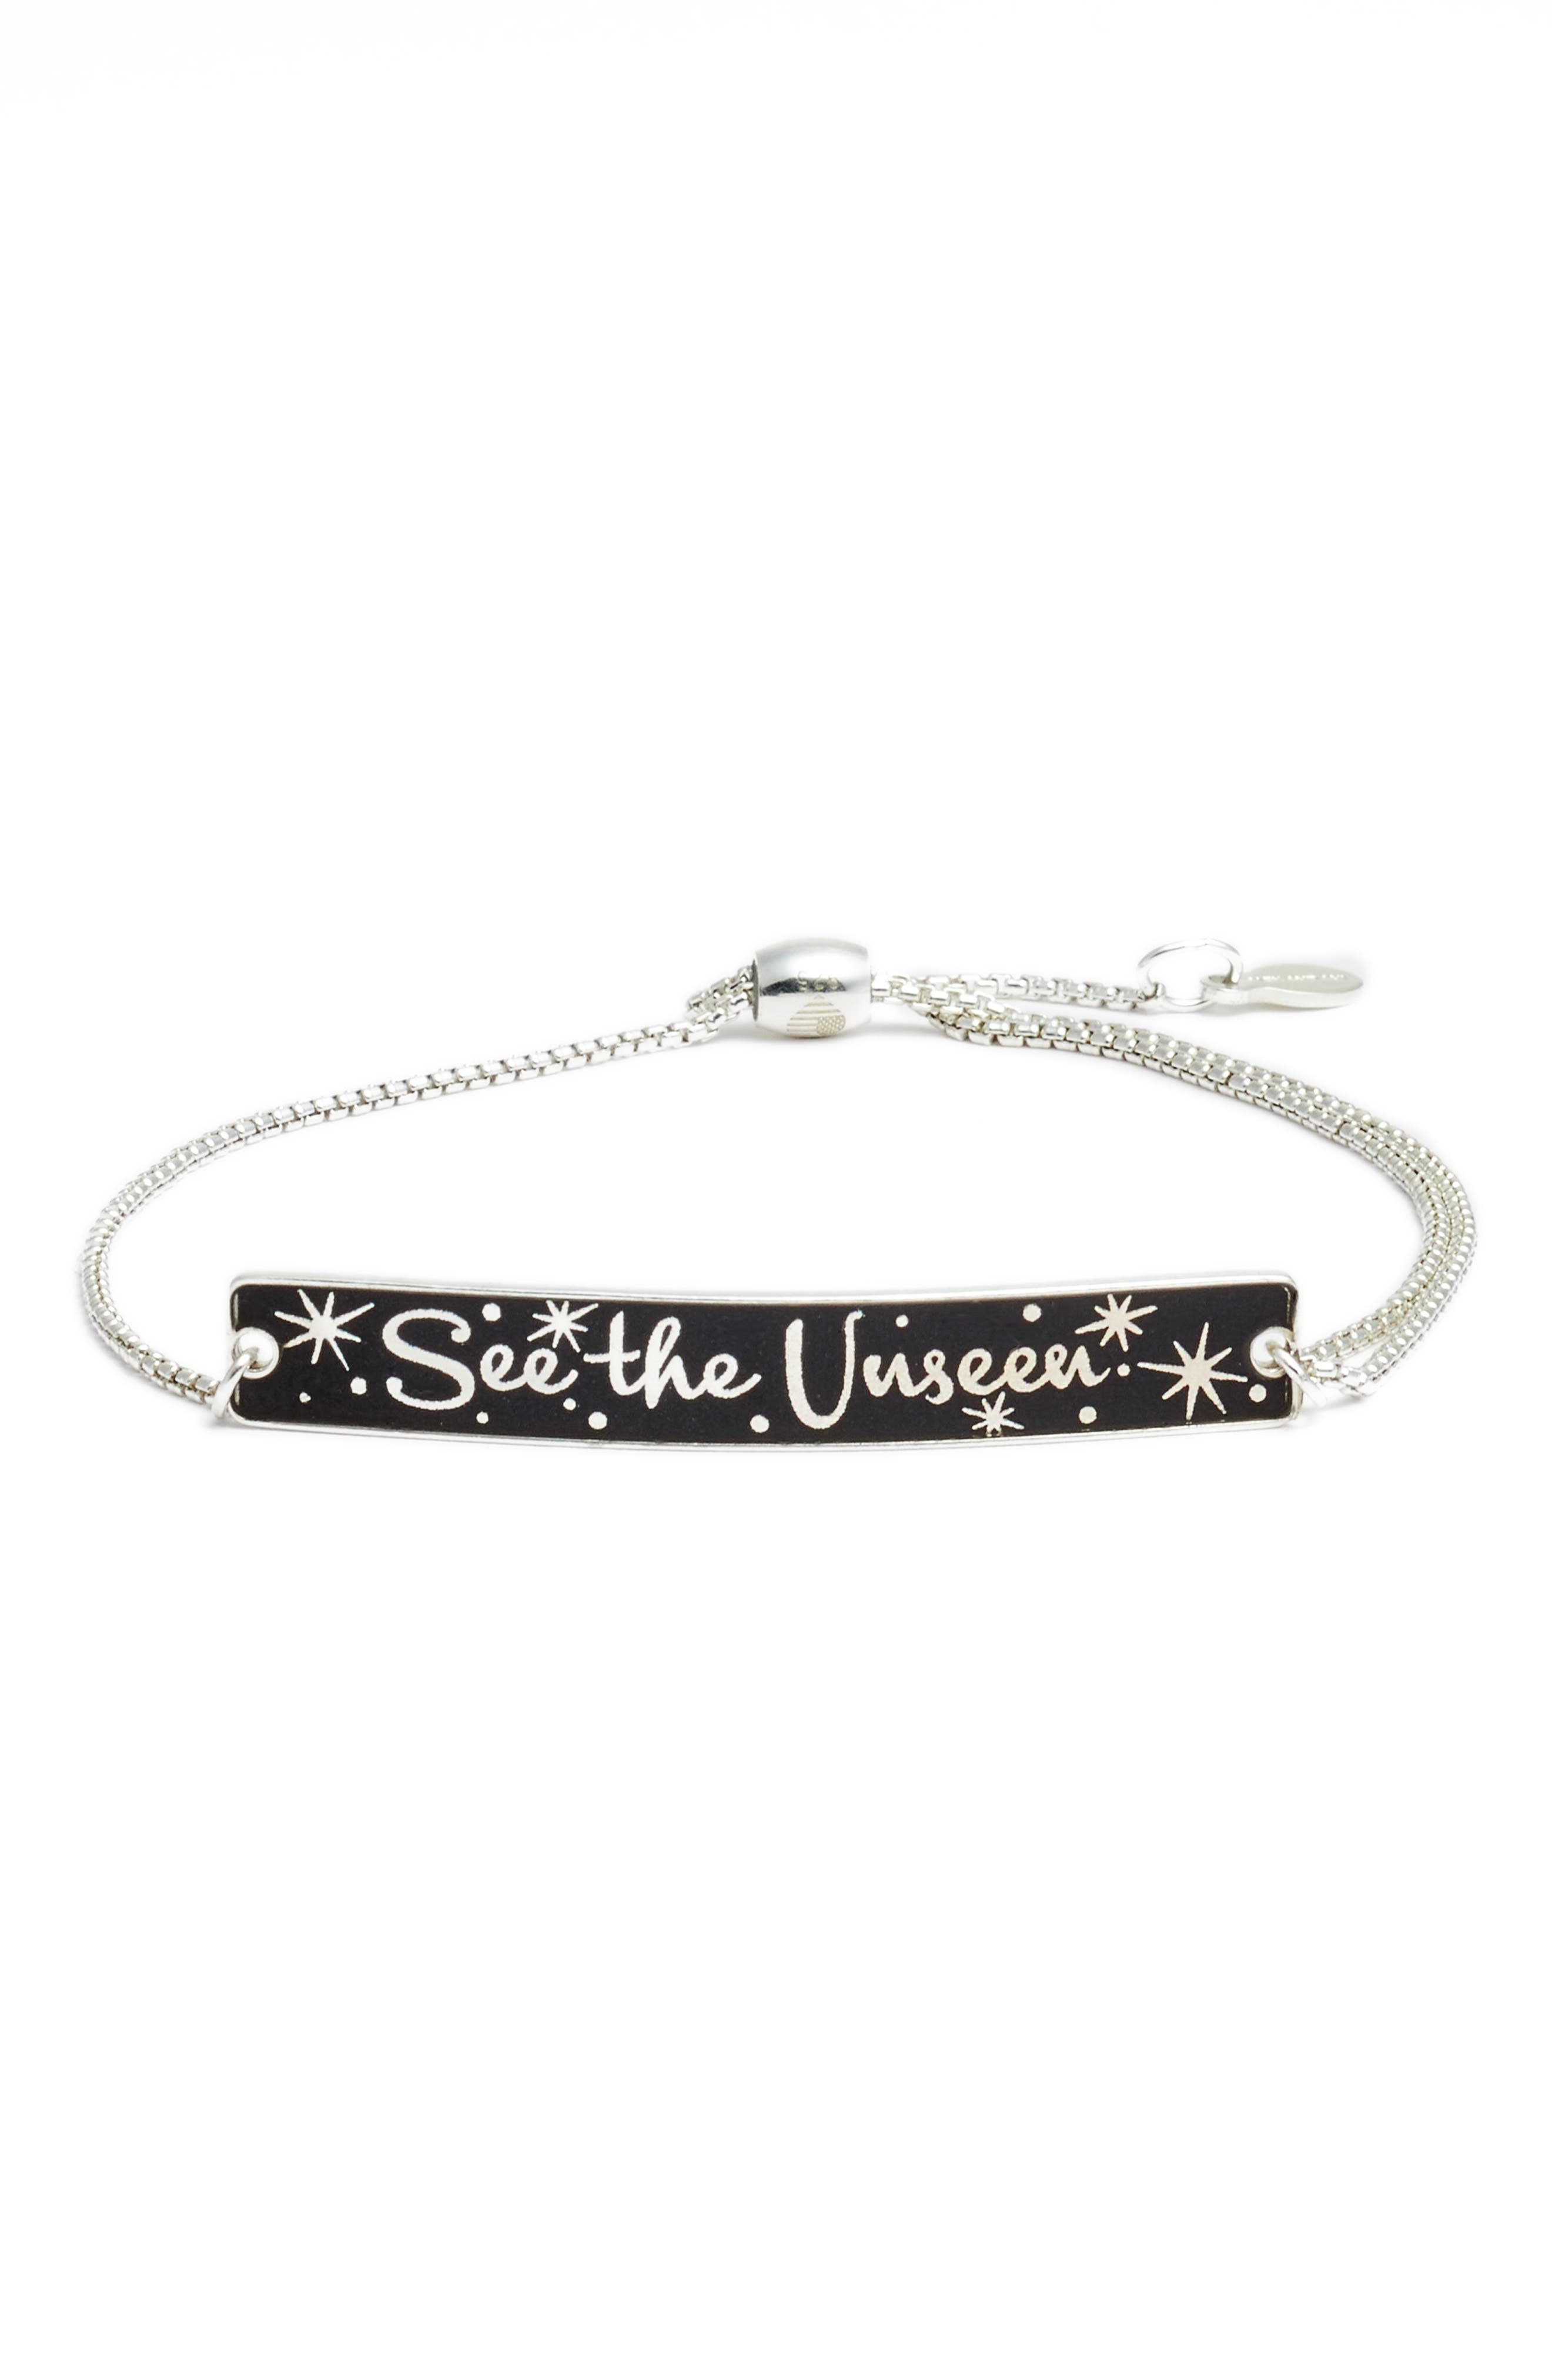 x Disney<sup>®</sup> 'A Wrinkle in Time' See the Unseen Pull-Chain Bracelet,                             Main thumbnail 1, color,                             040